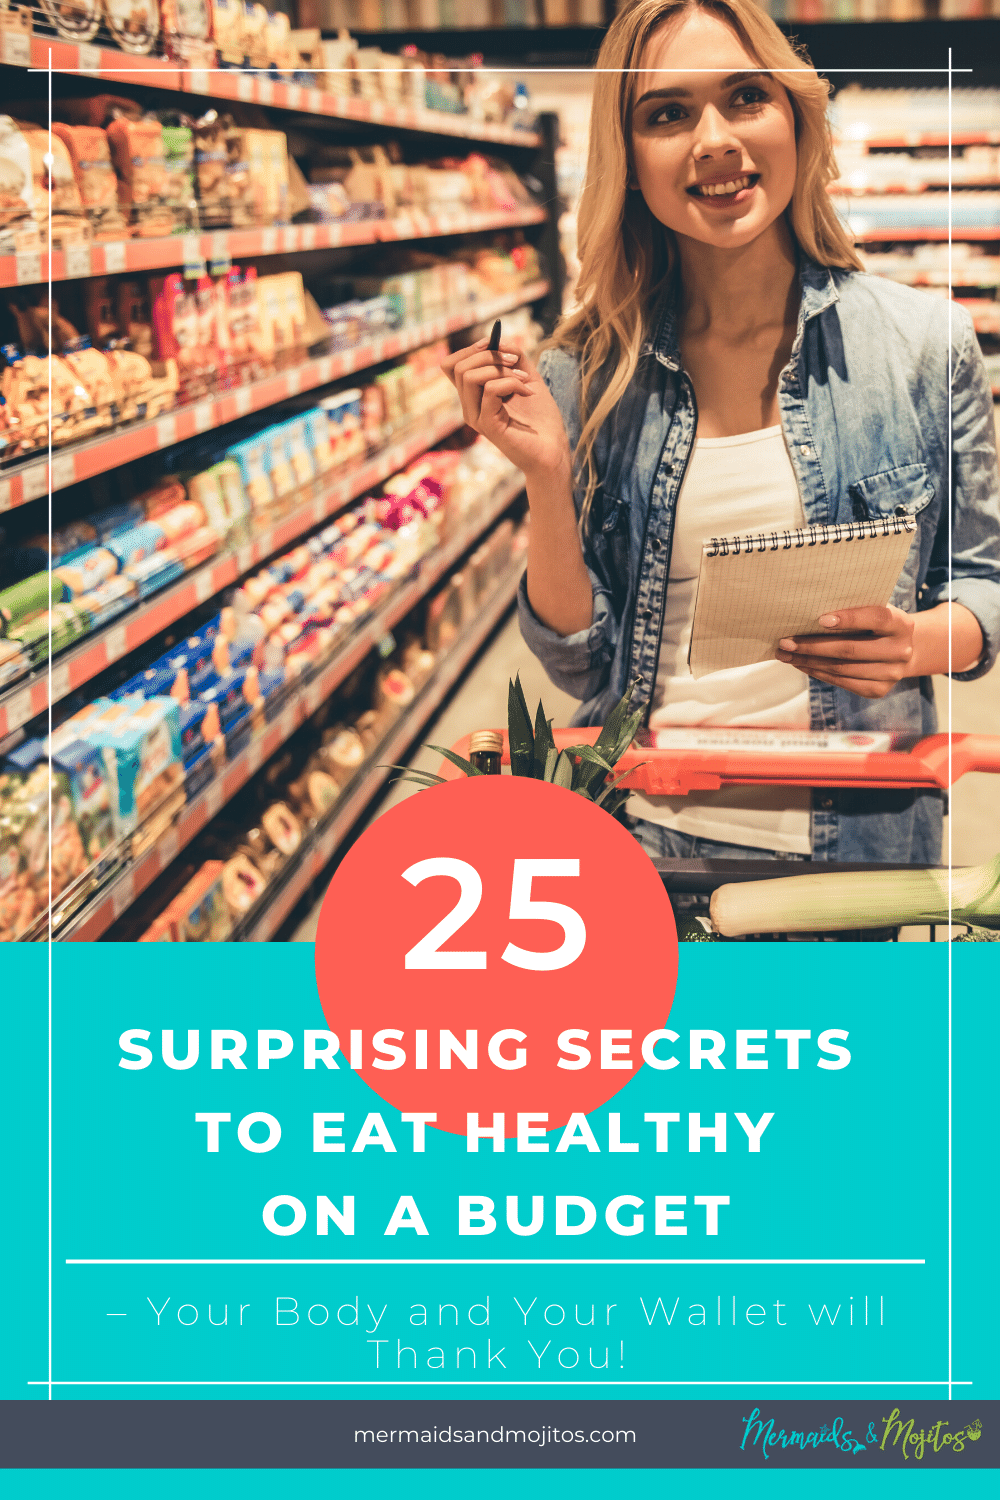 Myth busted - you can eat healthily and stay on a budget! Learn 25 simple secret hacks that make it easy to eat healthy without breaking the bank. via @mermaidsandmojitos